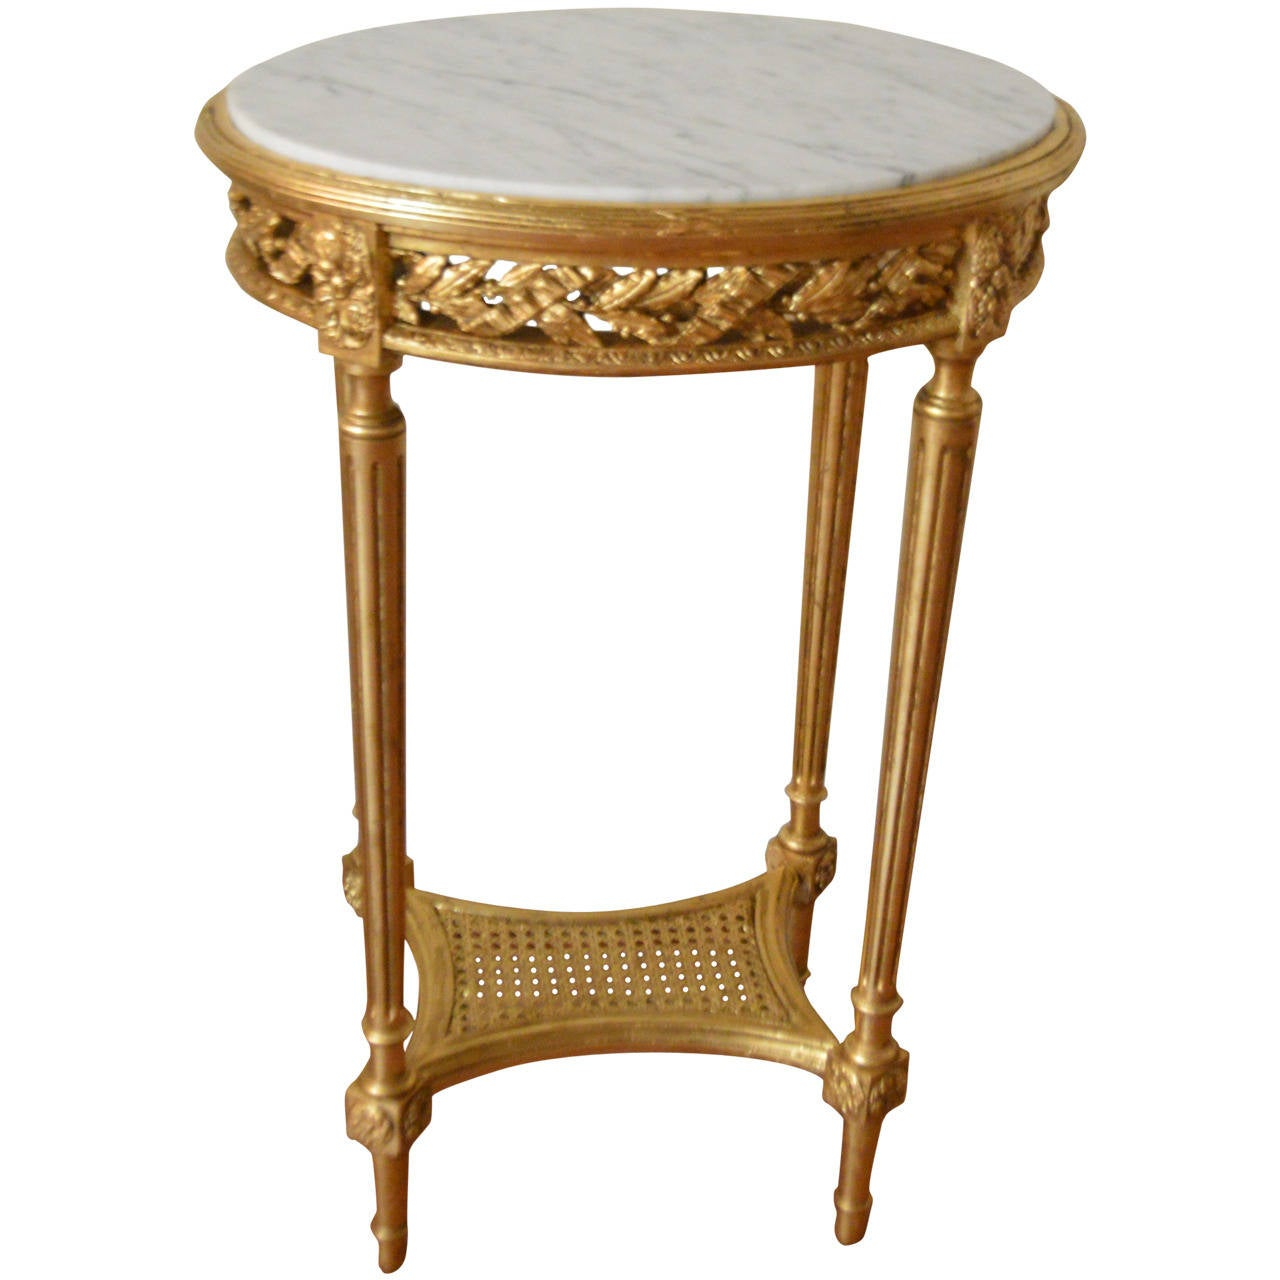 louis xvi style gilded oval side table at 1stdibs. Black Bedroom Furniture Sets. Home Design Ideas